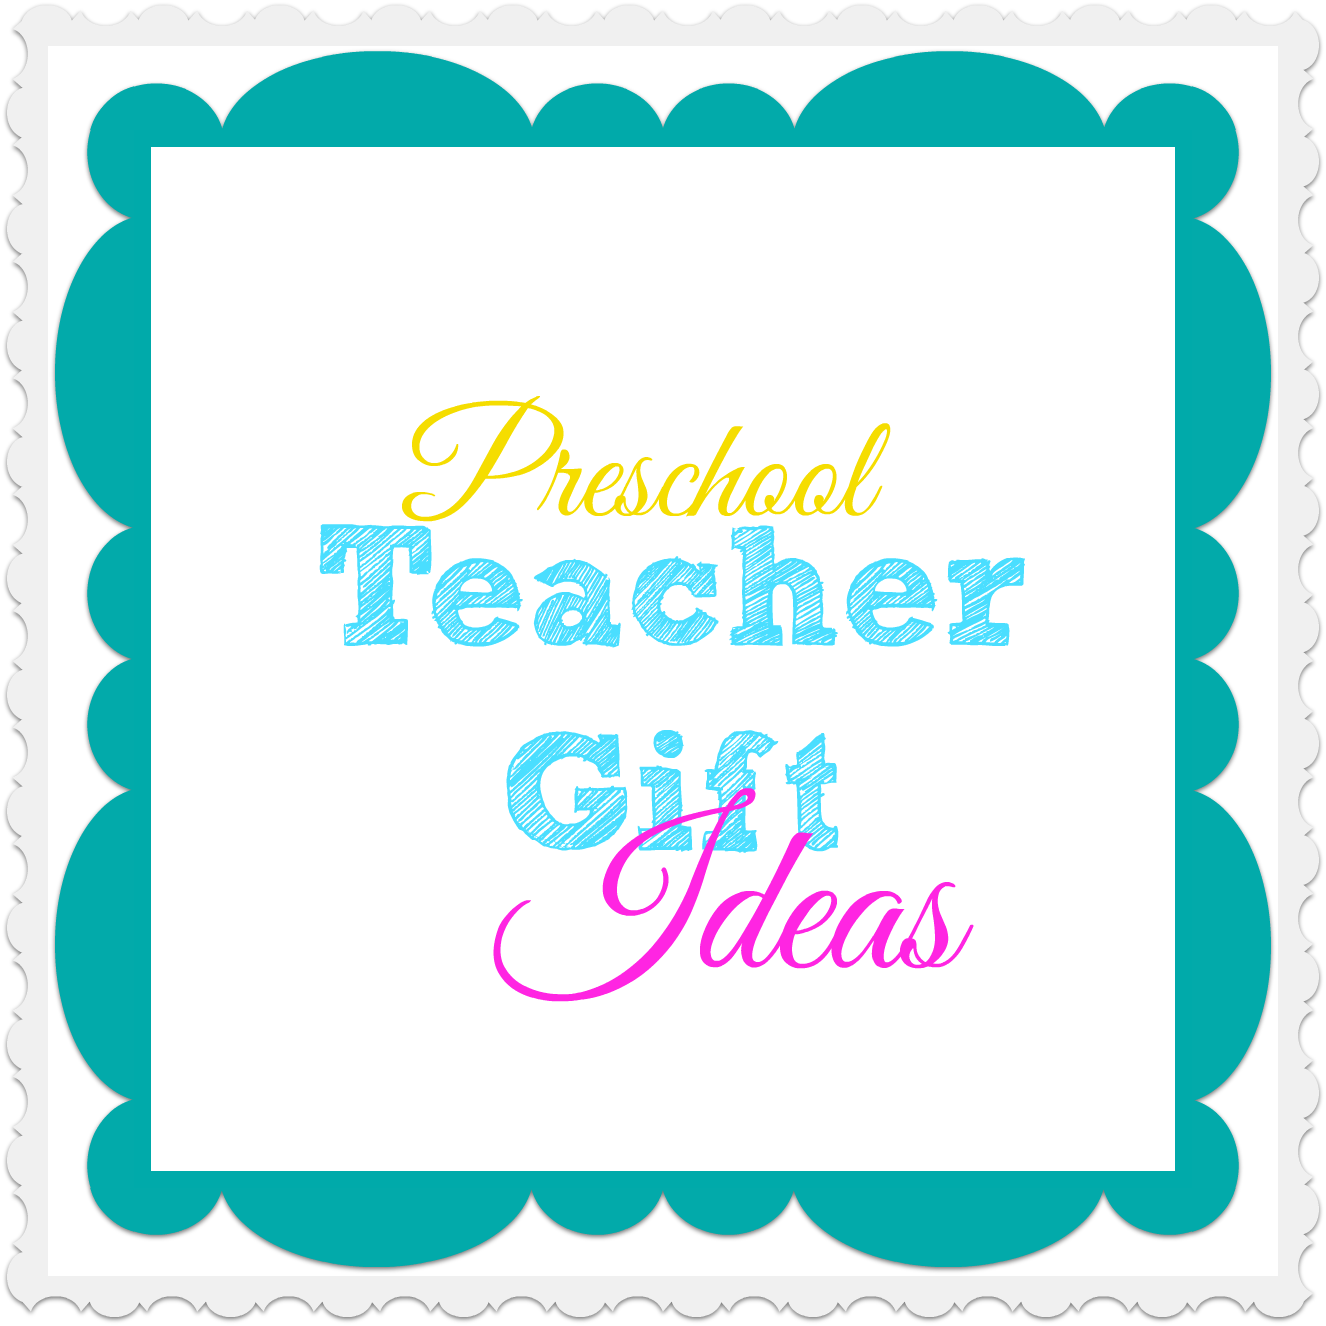 Preschool Teacher Gift Ideas - What Mommy Does